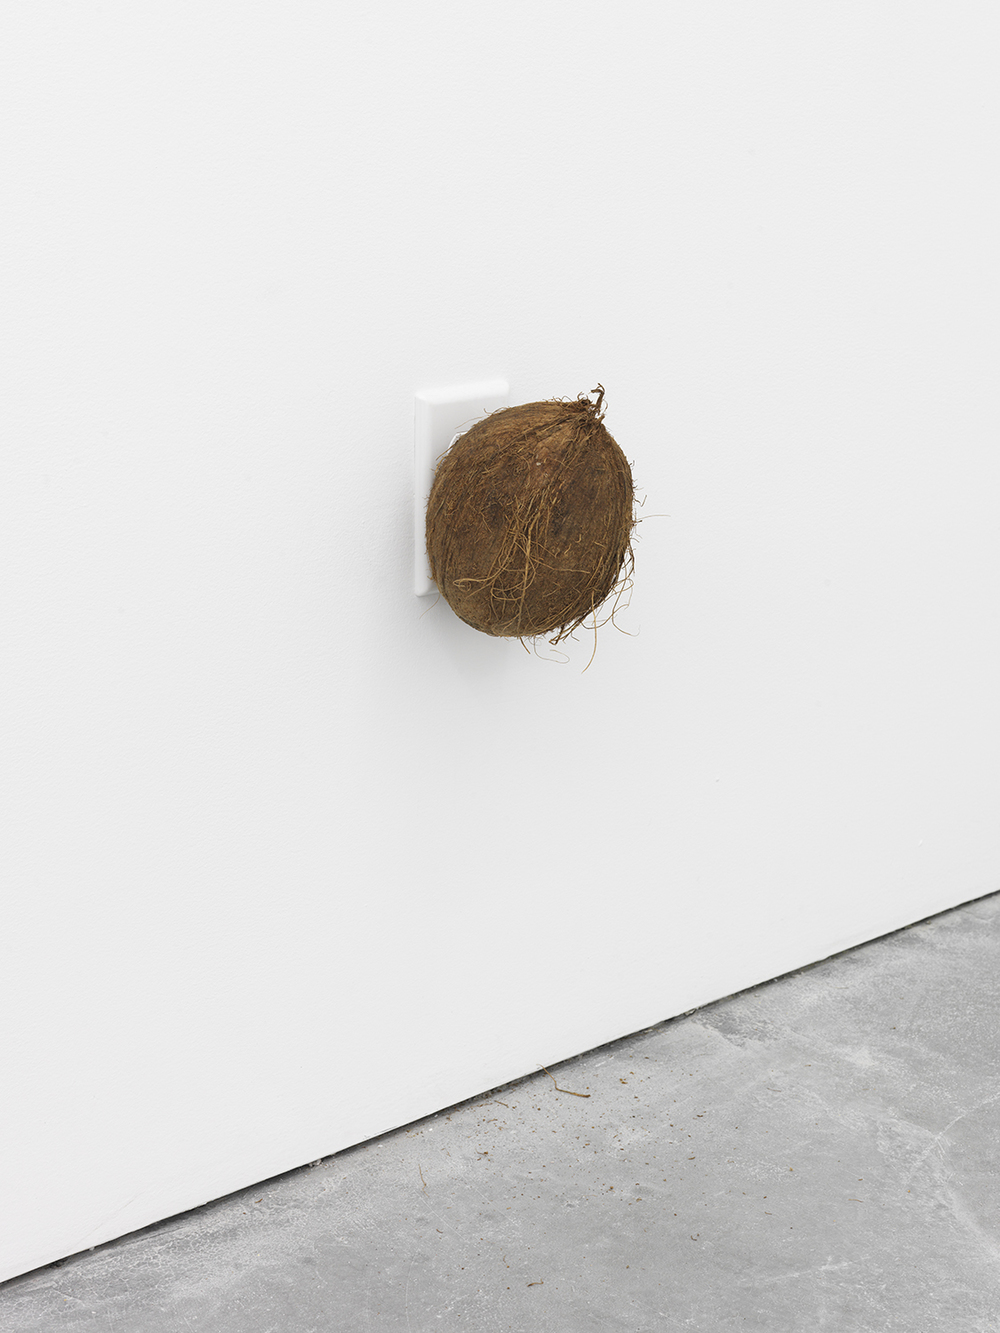 Dominic Samsworth Thinking on our Backs, 2015 Coconut, air freshener and scent 6 x 4 inches